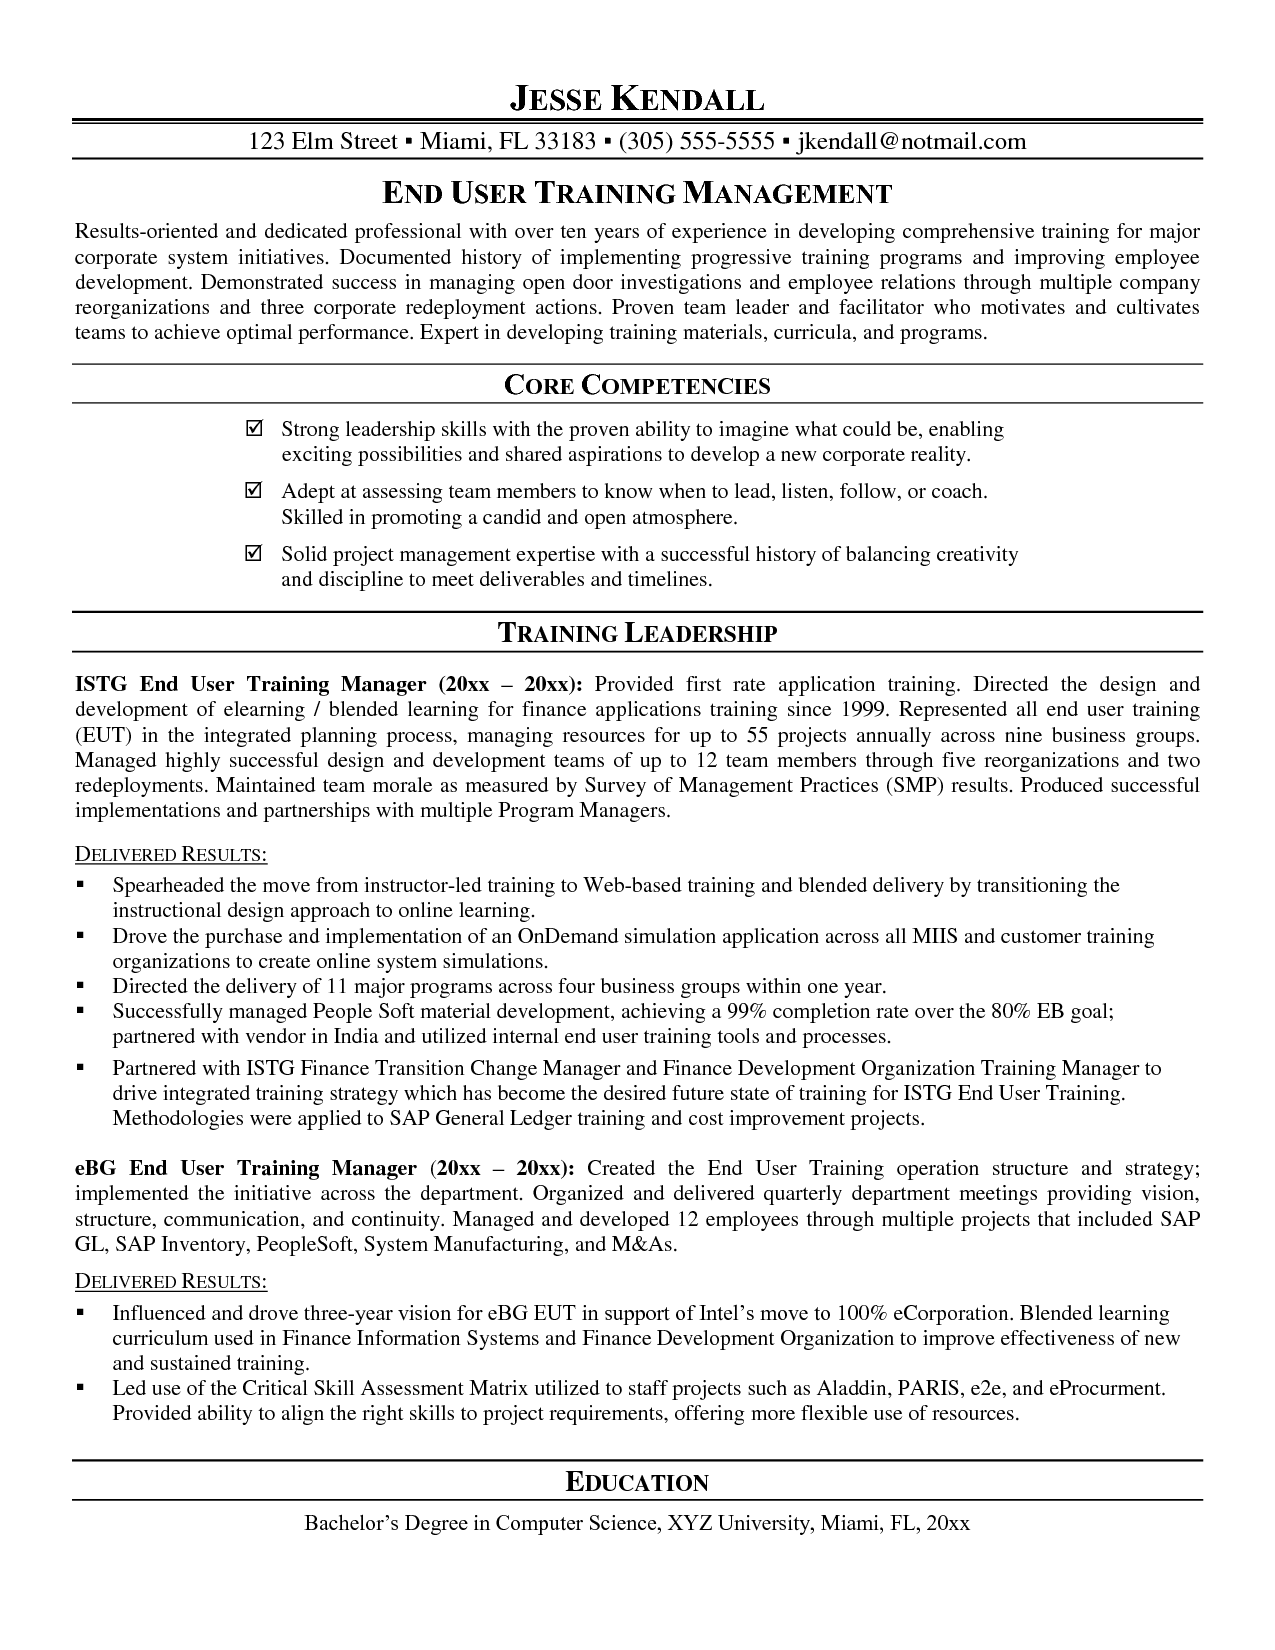 Training Manager Resume Http Www Resumecareer Info Training Manager Resume 9 Training Manager Resume Objective Examples Resume